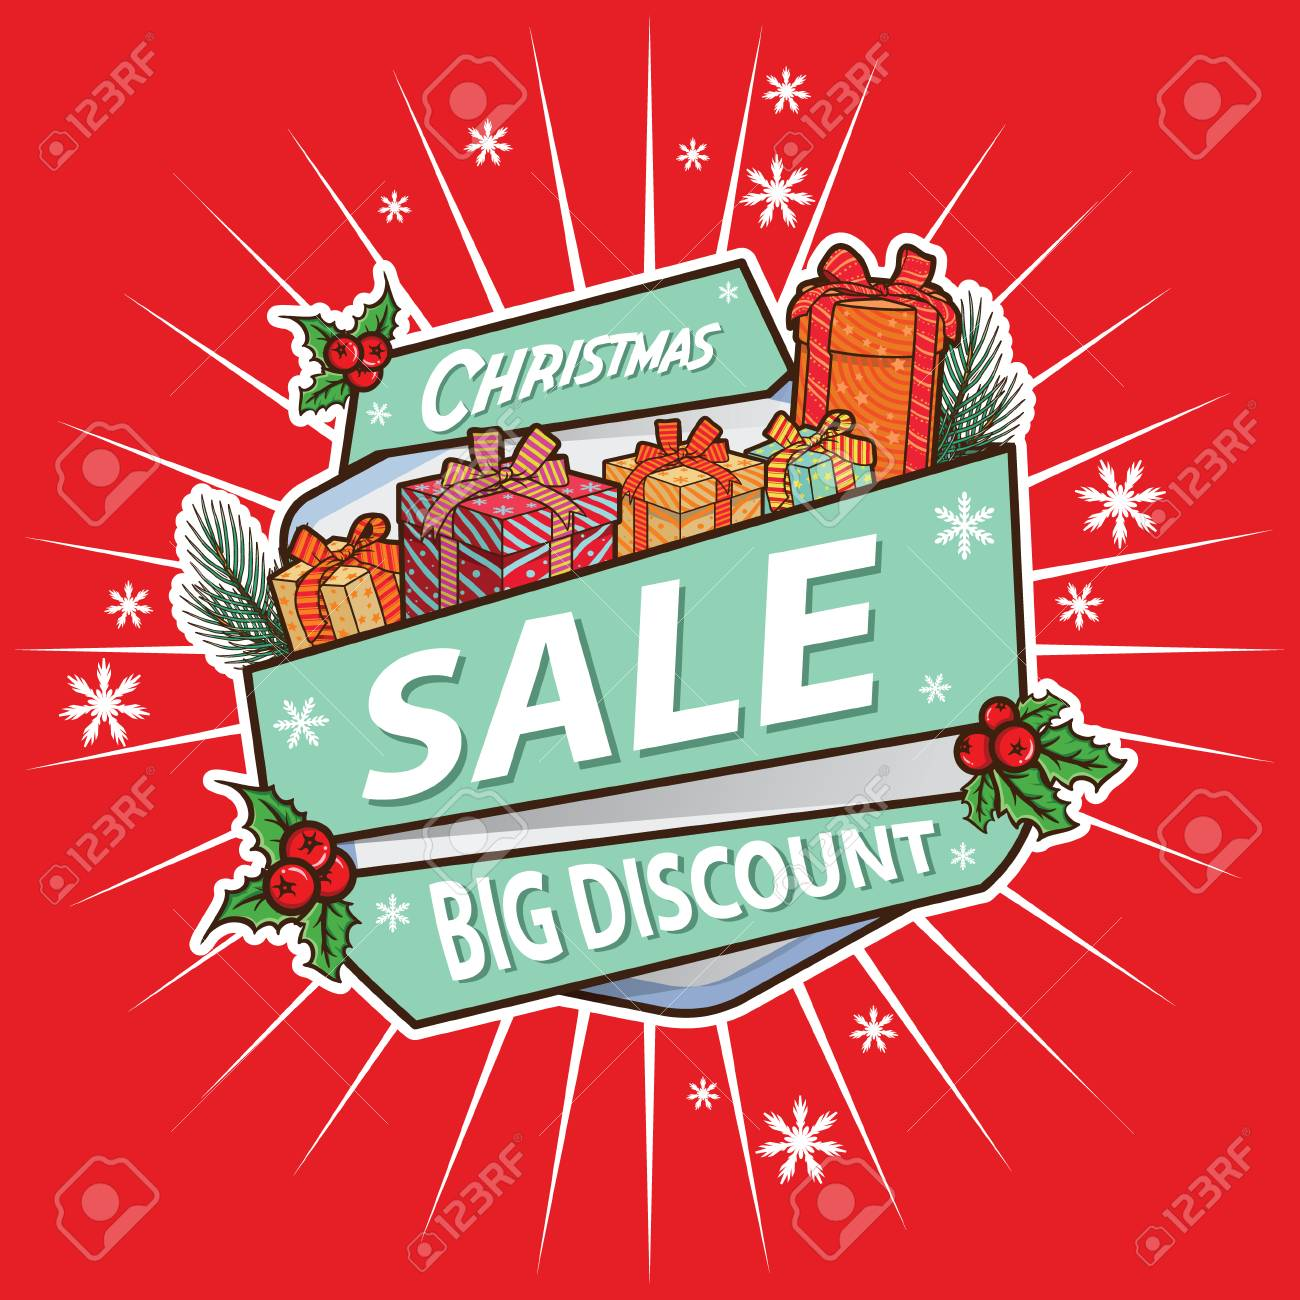 c0809f05ef07 Merry Christmas sale banner template Stock Vector - 110932553